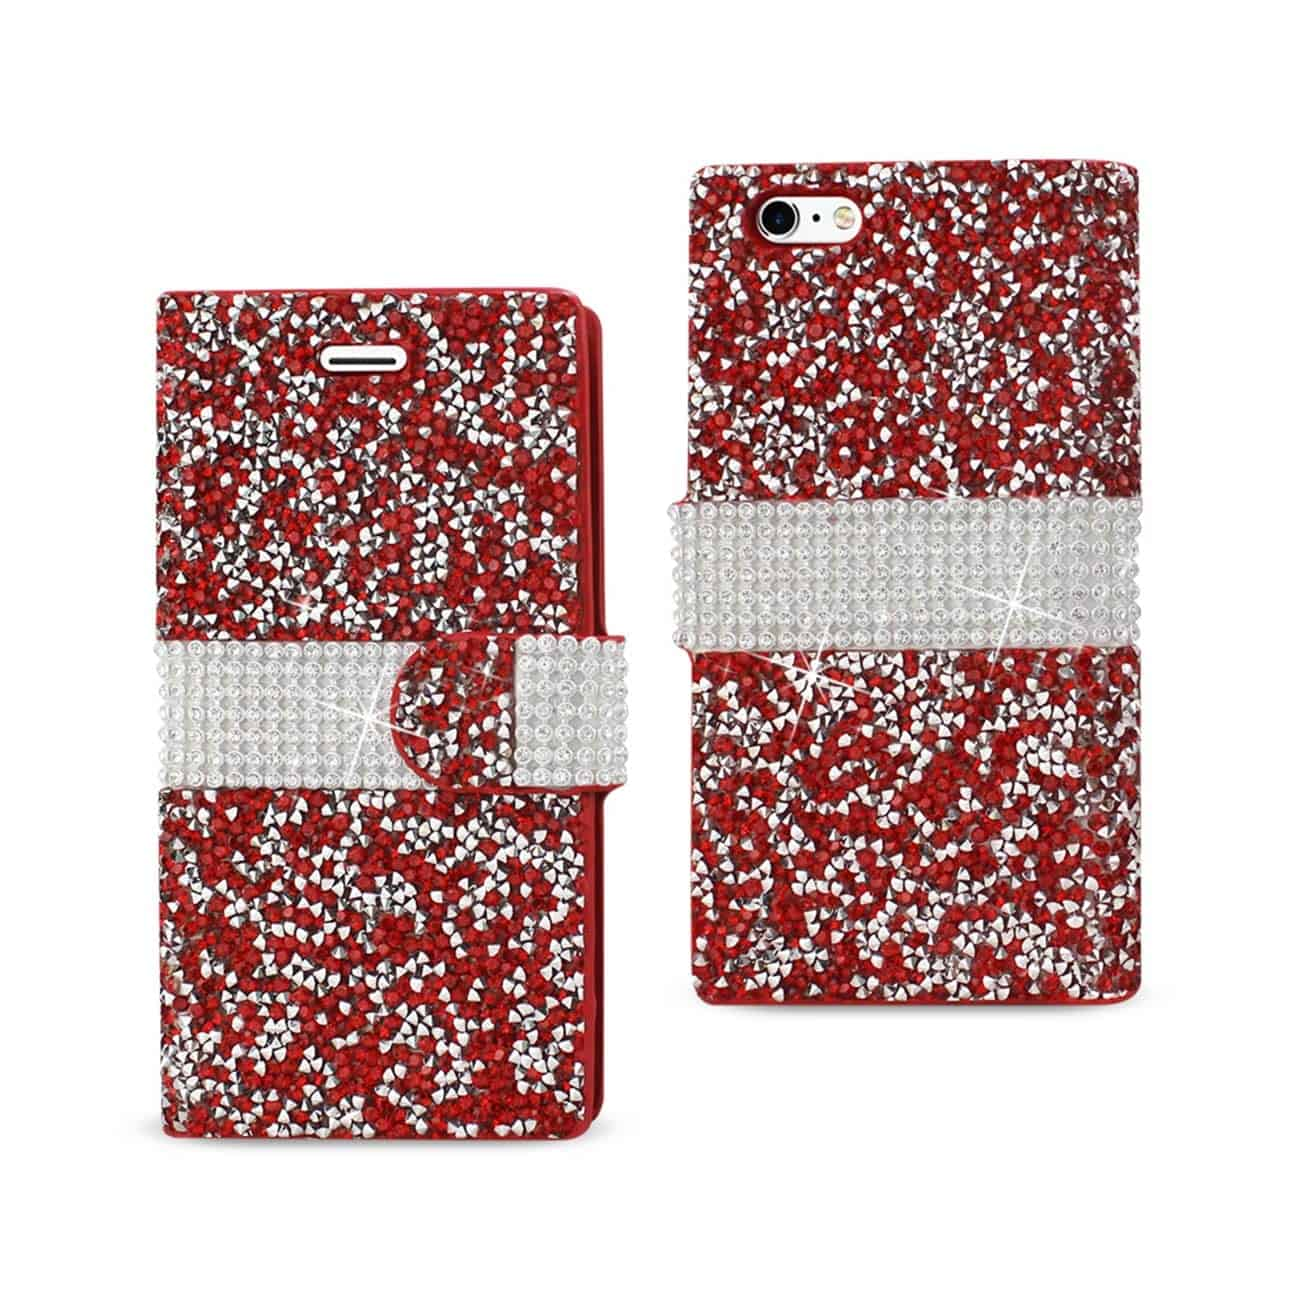 IPHONE 6 DIAMOND RHINESTONE WALLET CASE IN RED